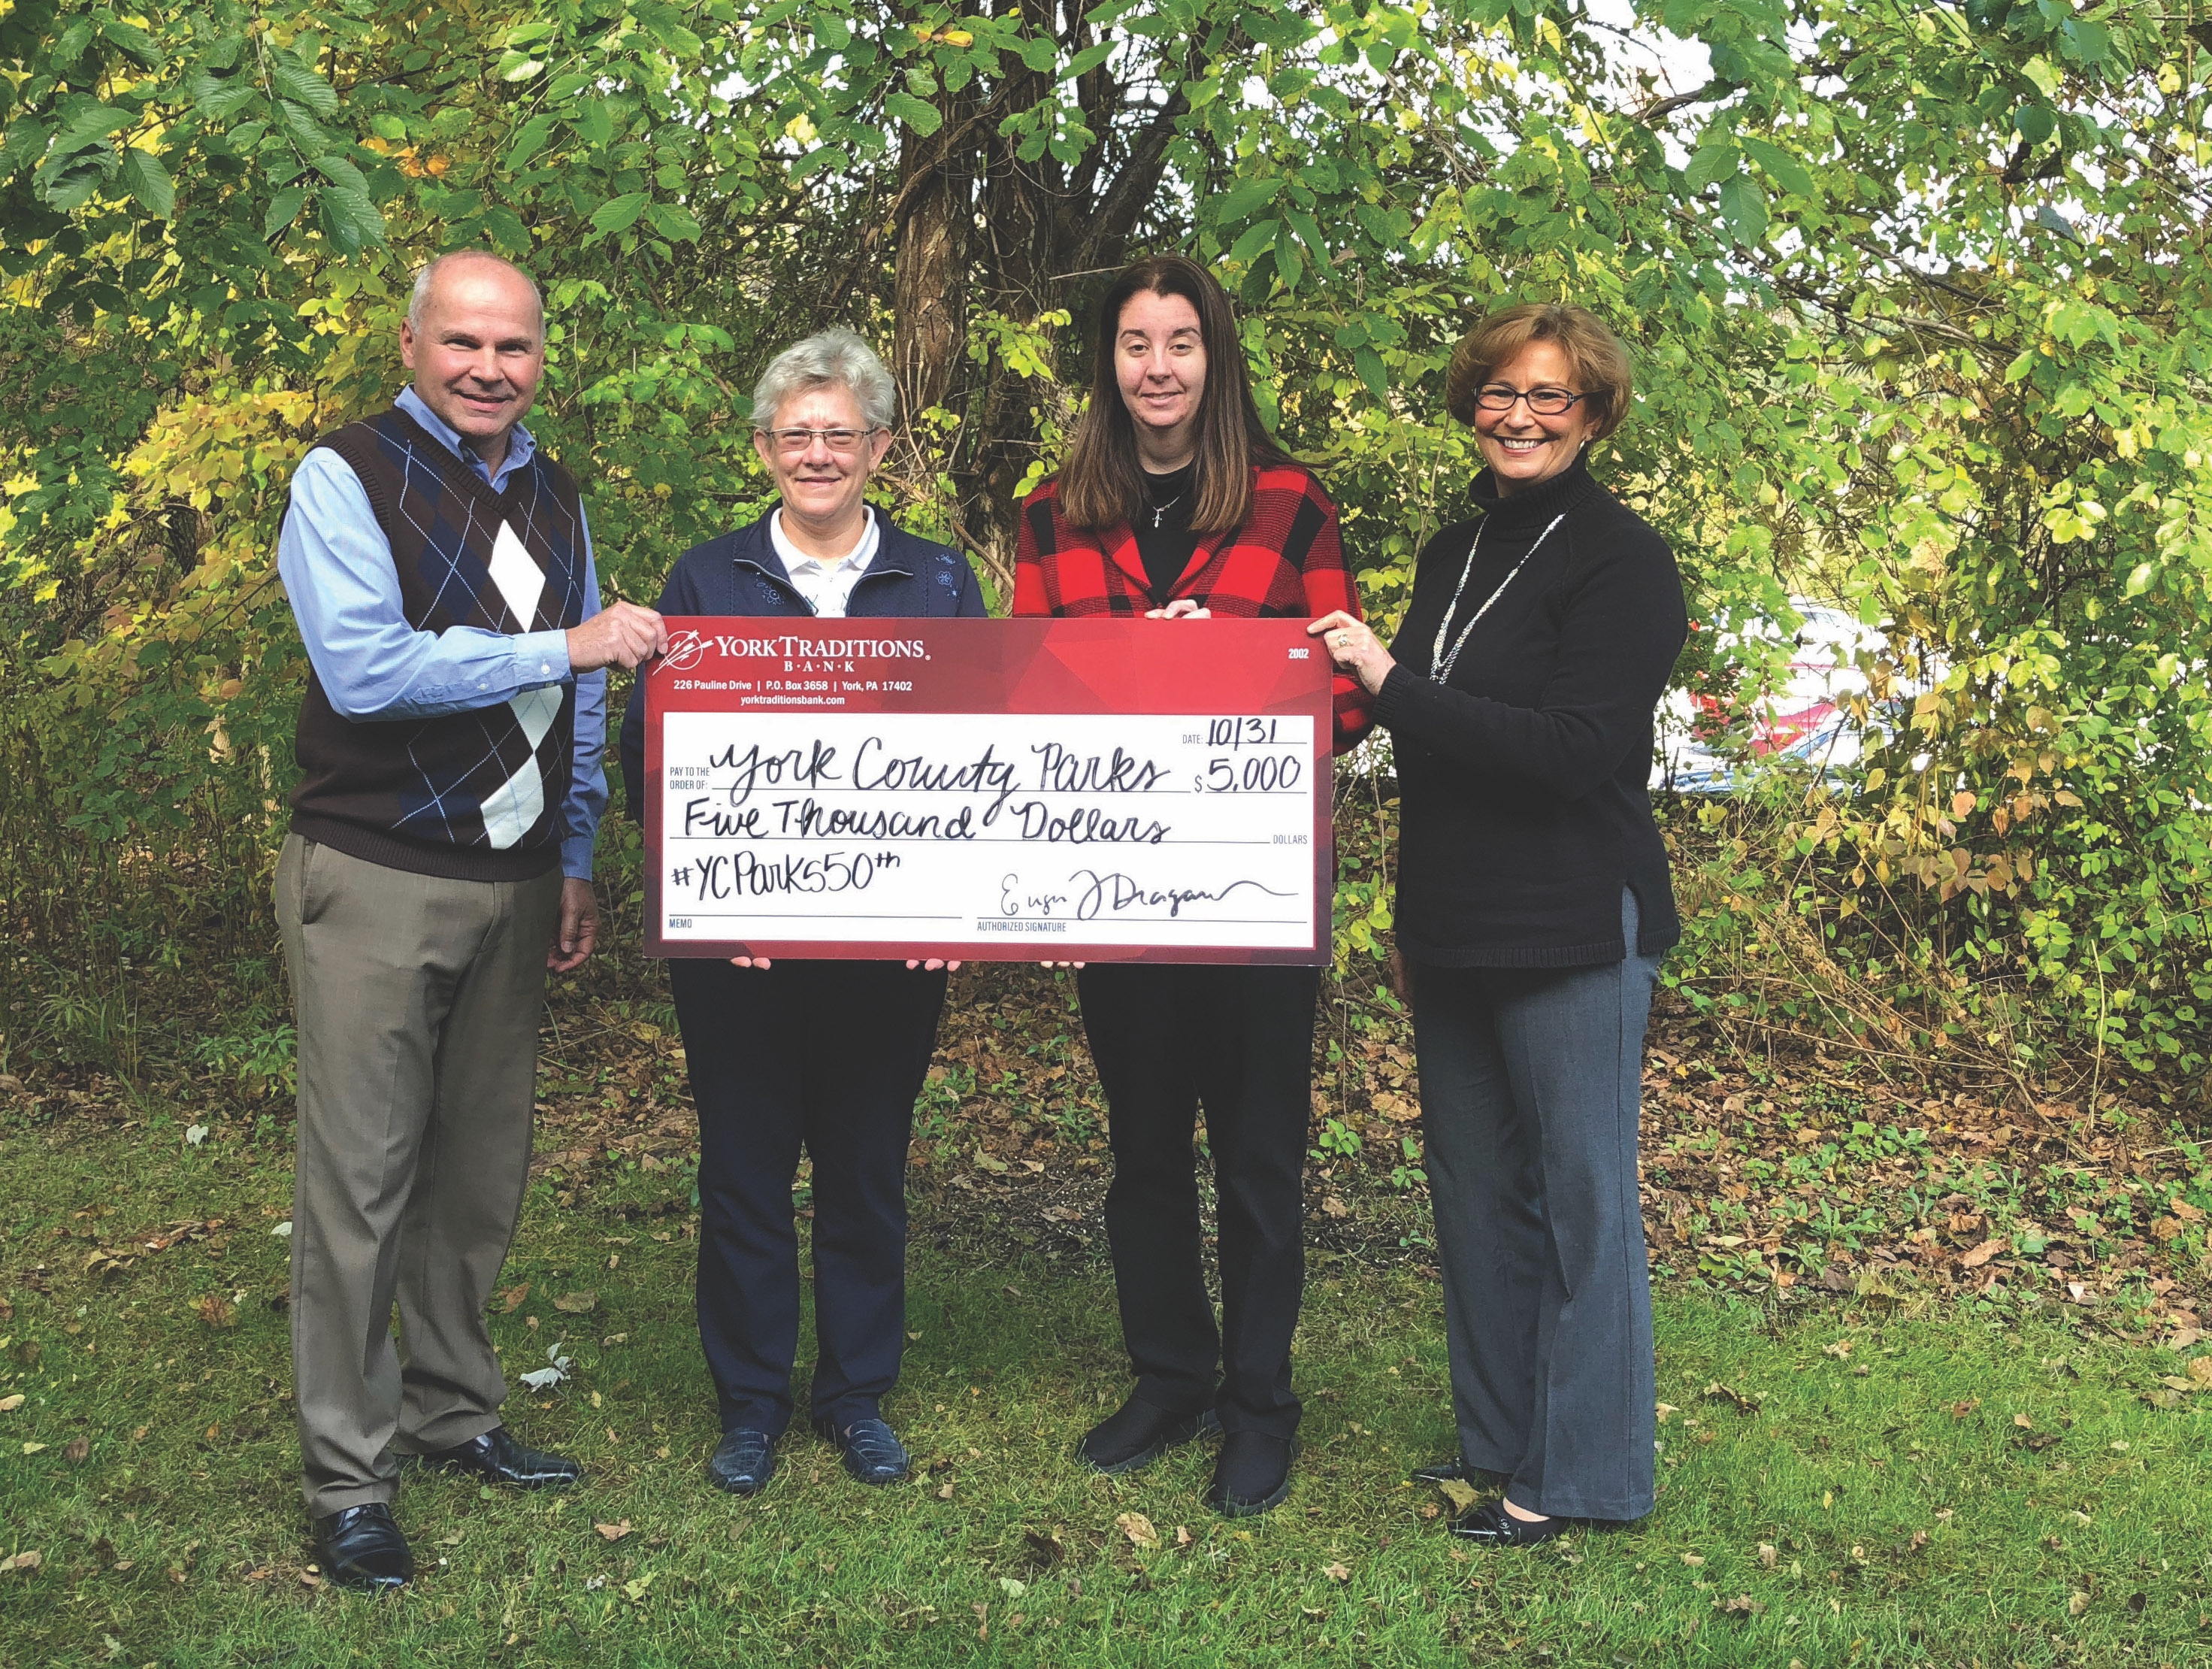 Pictured (left to right) are: Keith Sheffer, York Traditions Bank Director of Loan Administration; Tammy Klunk, Director of York County Parks; Attorney Amanda Snoke-Dubbs, York County Parks Foundation Board Member; and Vickie Chronister, York Traditions Bank Director of Operations.